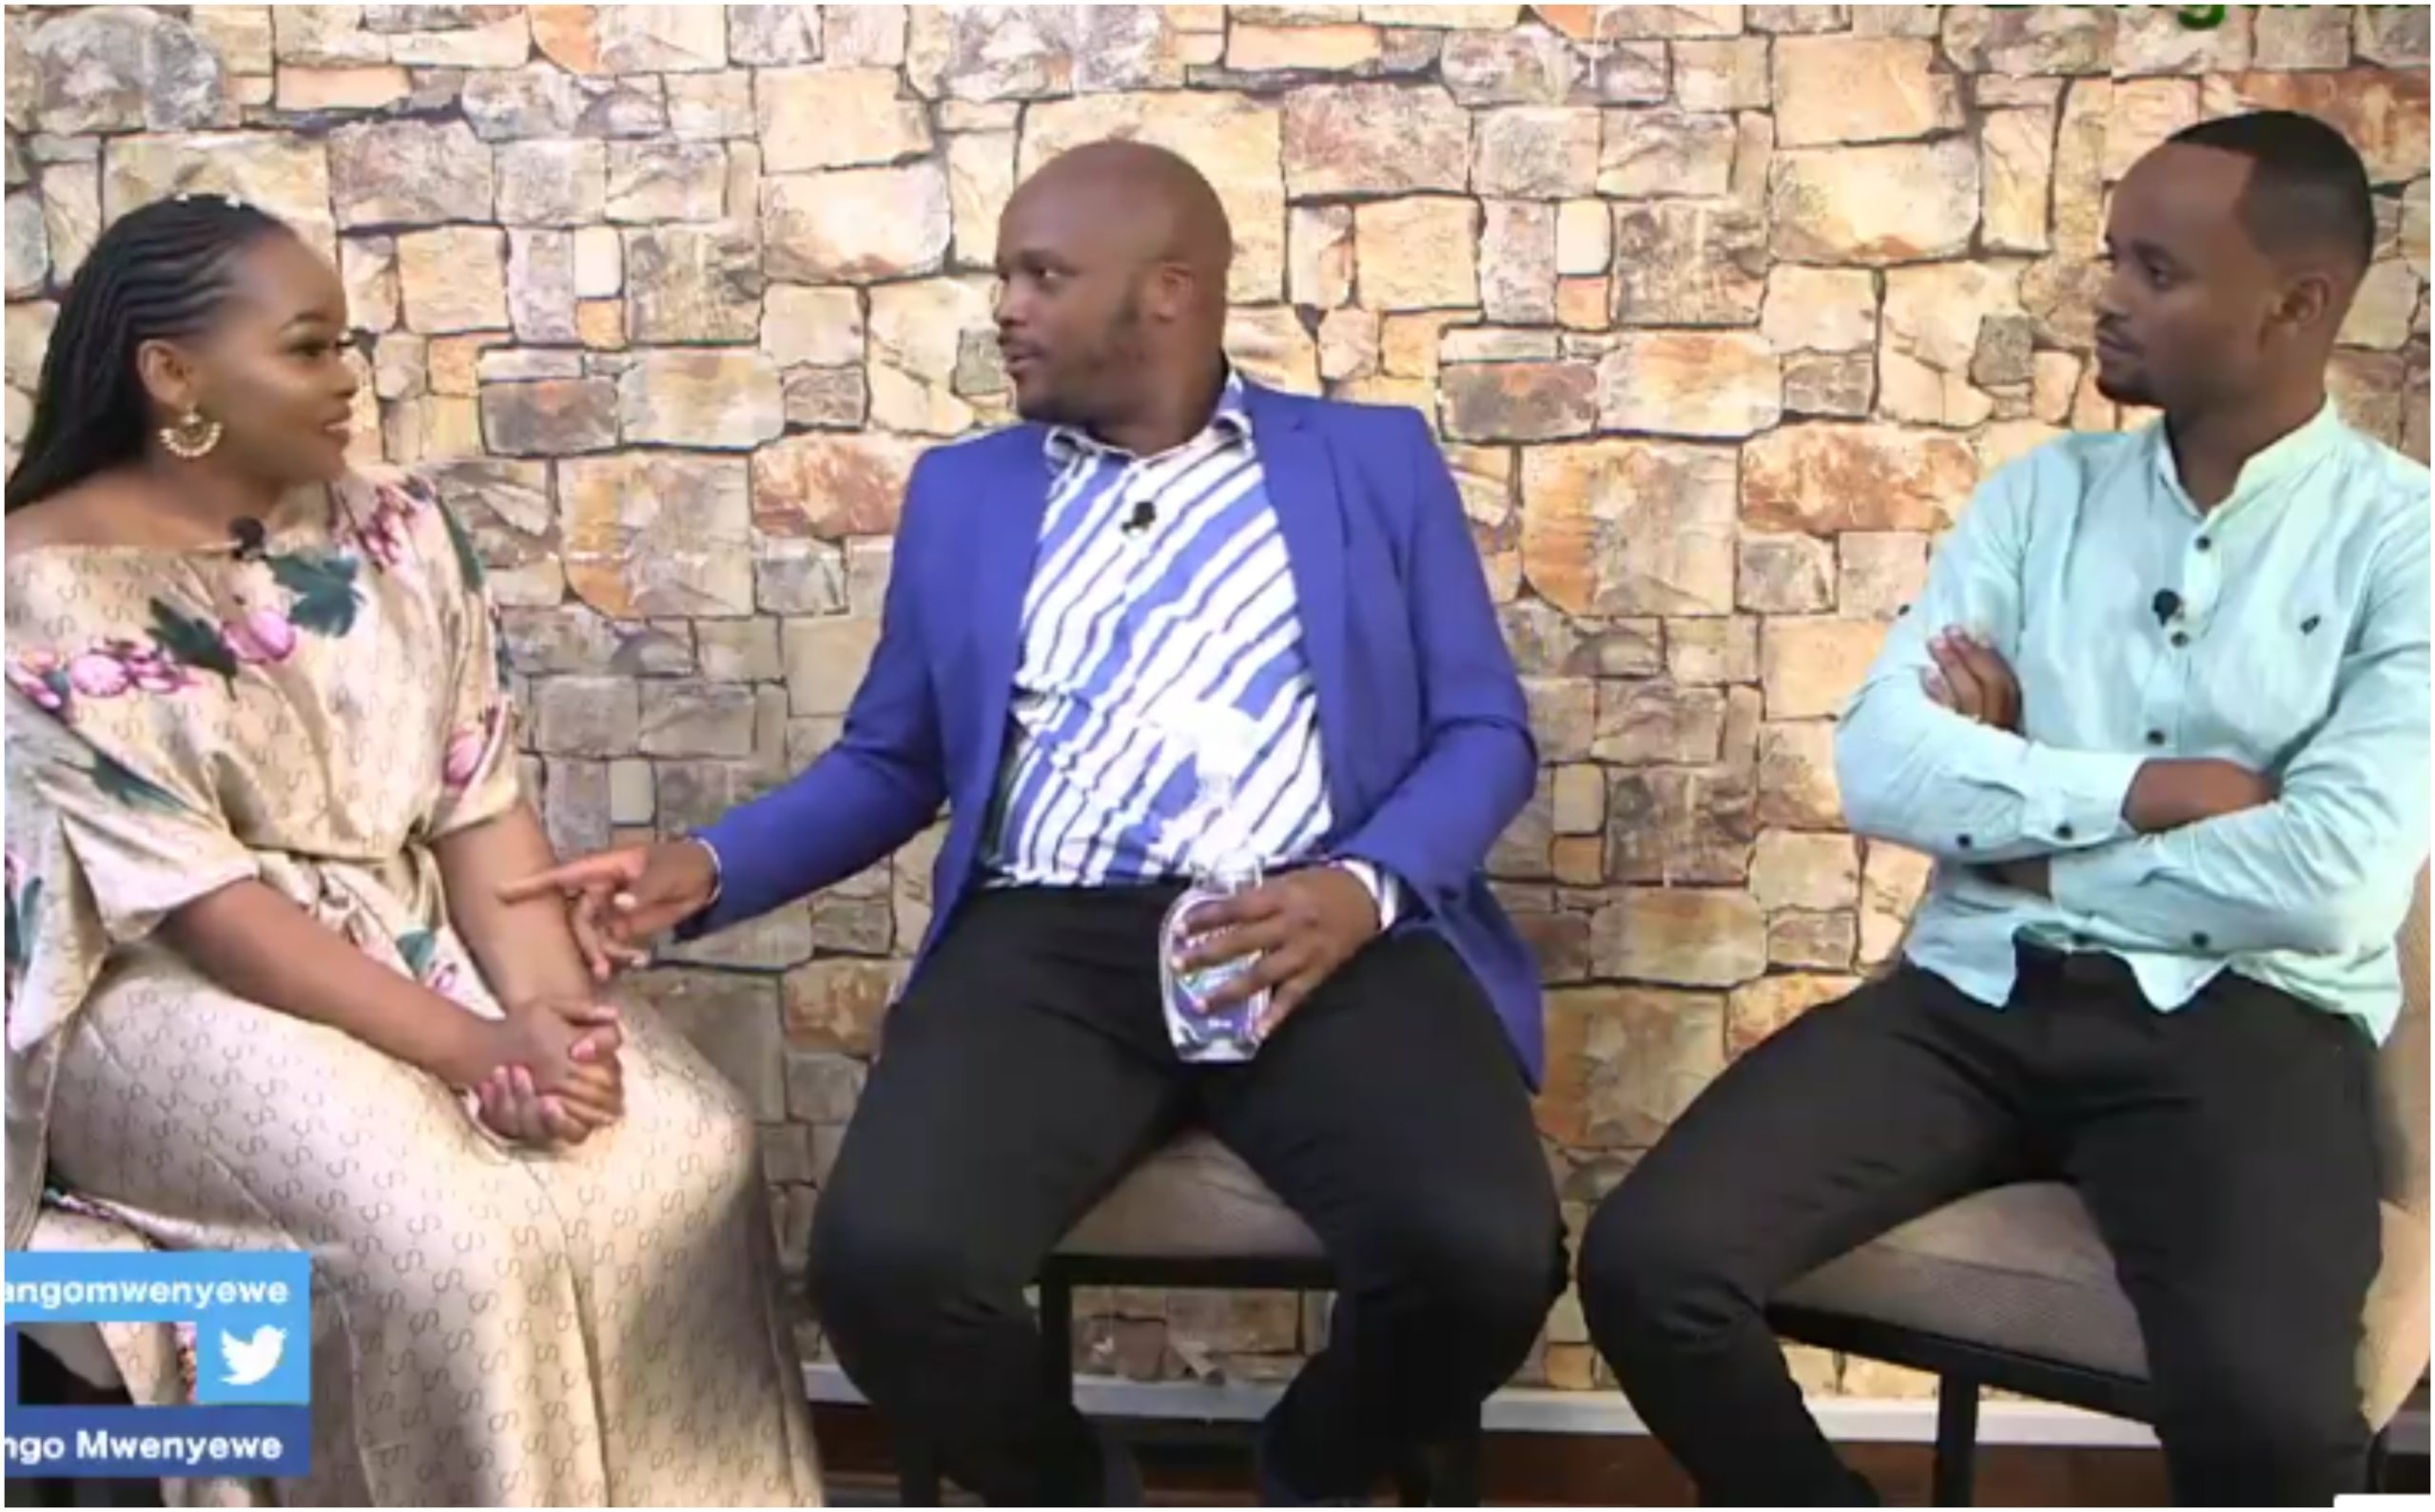 Kabi WaJesus nearly walks out of Live interview after Jalango's intrusive question to wife (Video)